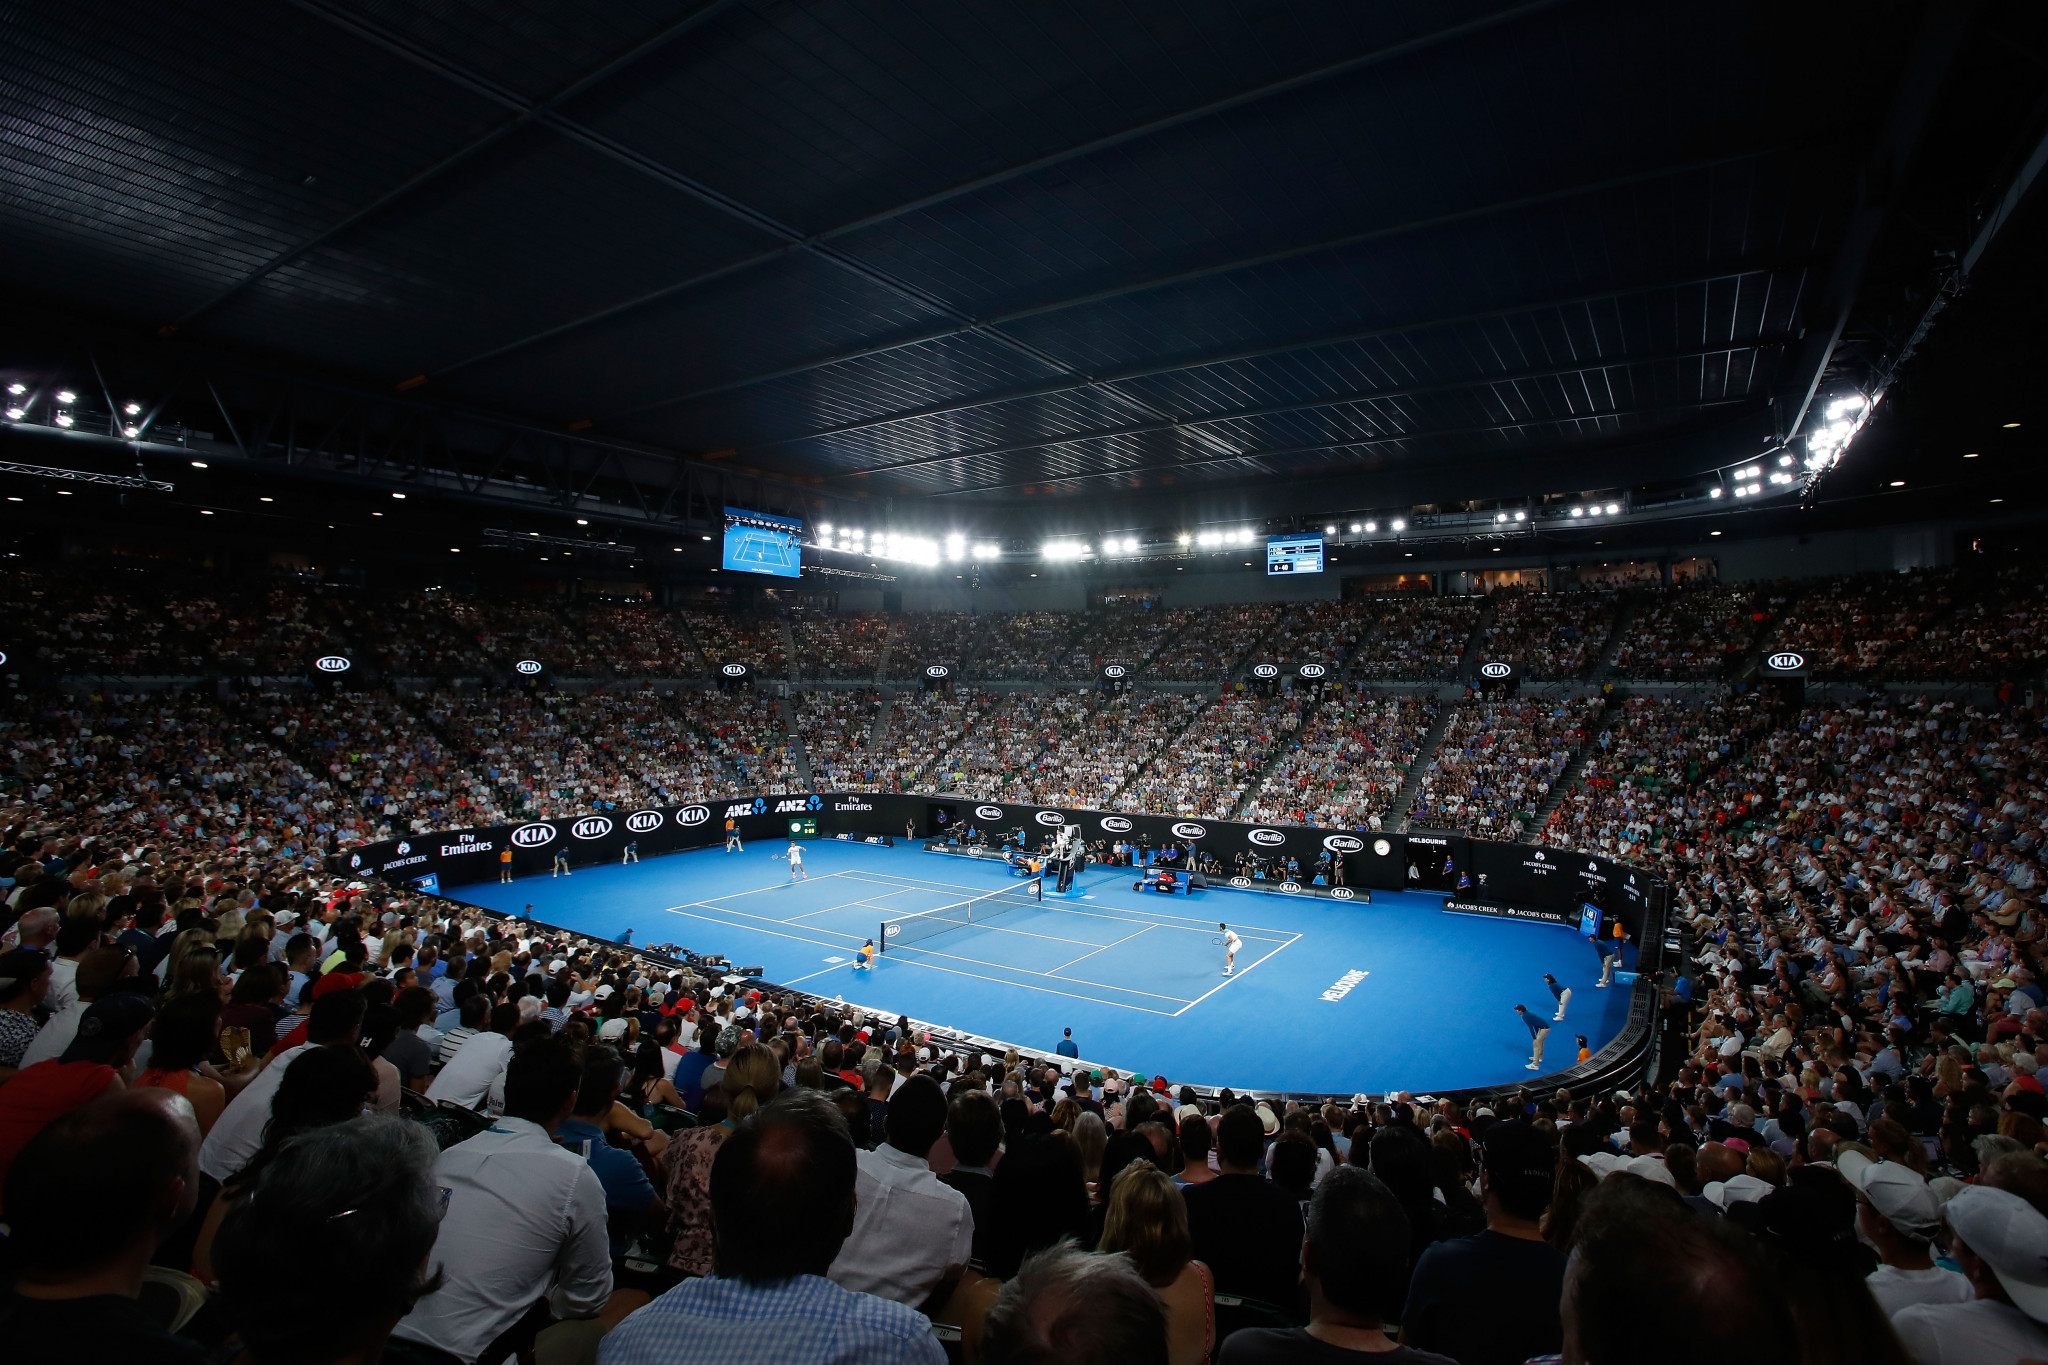 Association of Tennis Professionals announce new World Team Cup to rival Davis Cup